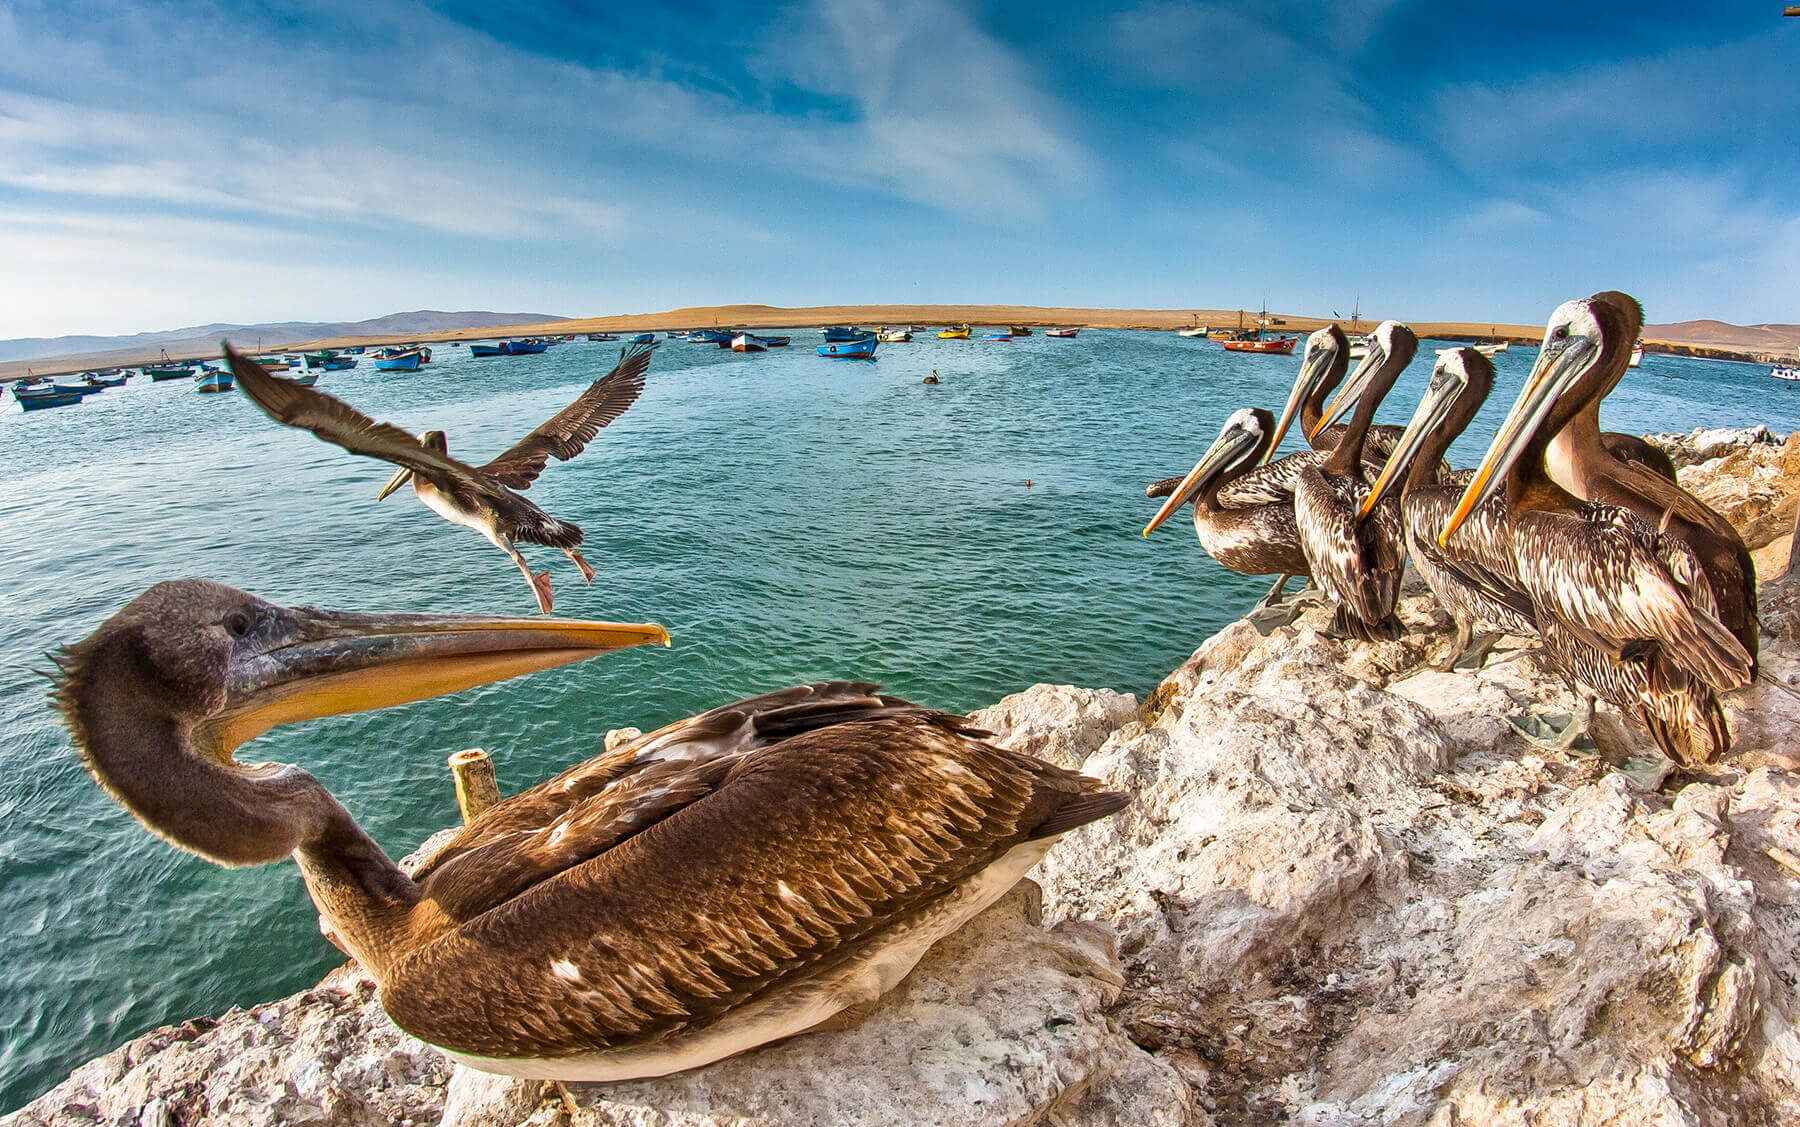 Pelicans at Islas Ballestas in Peru